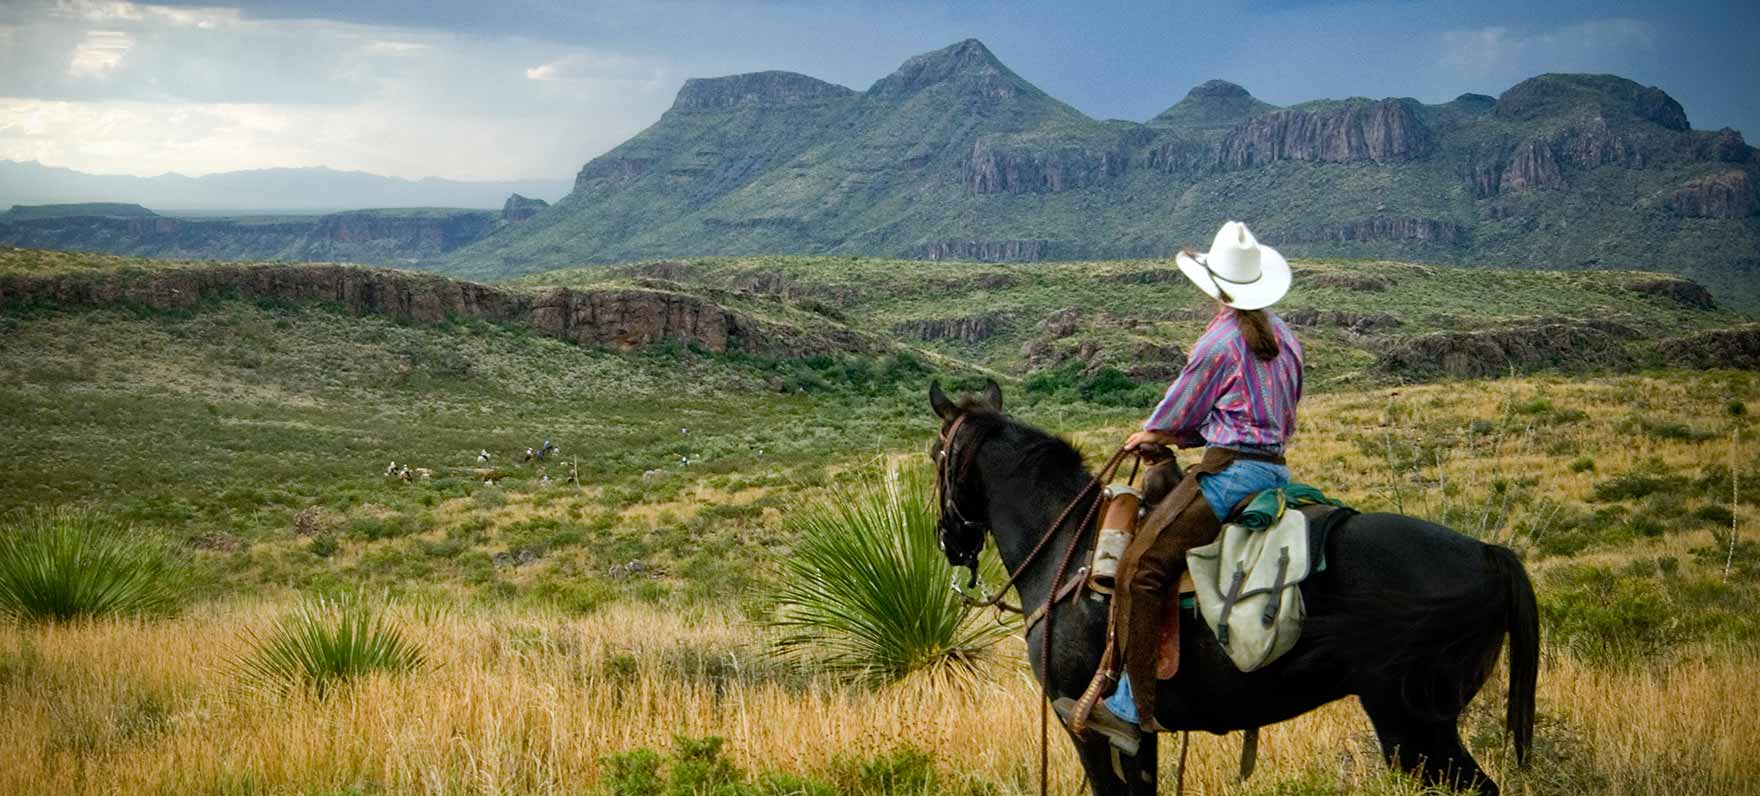 http://www.ranchland.com/ranches-for-sale/texas-ranches-for-sale